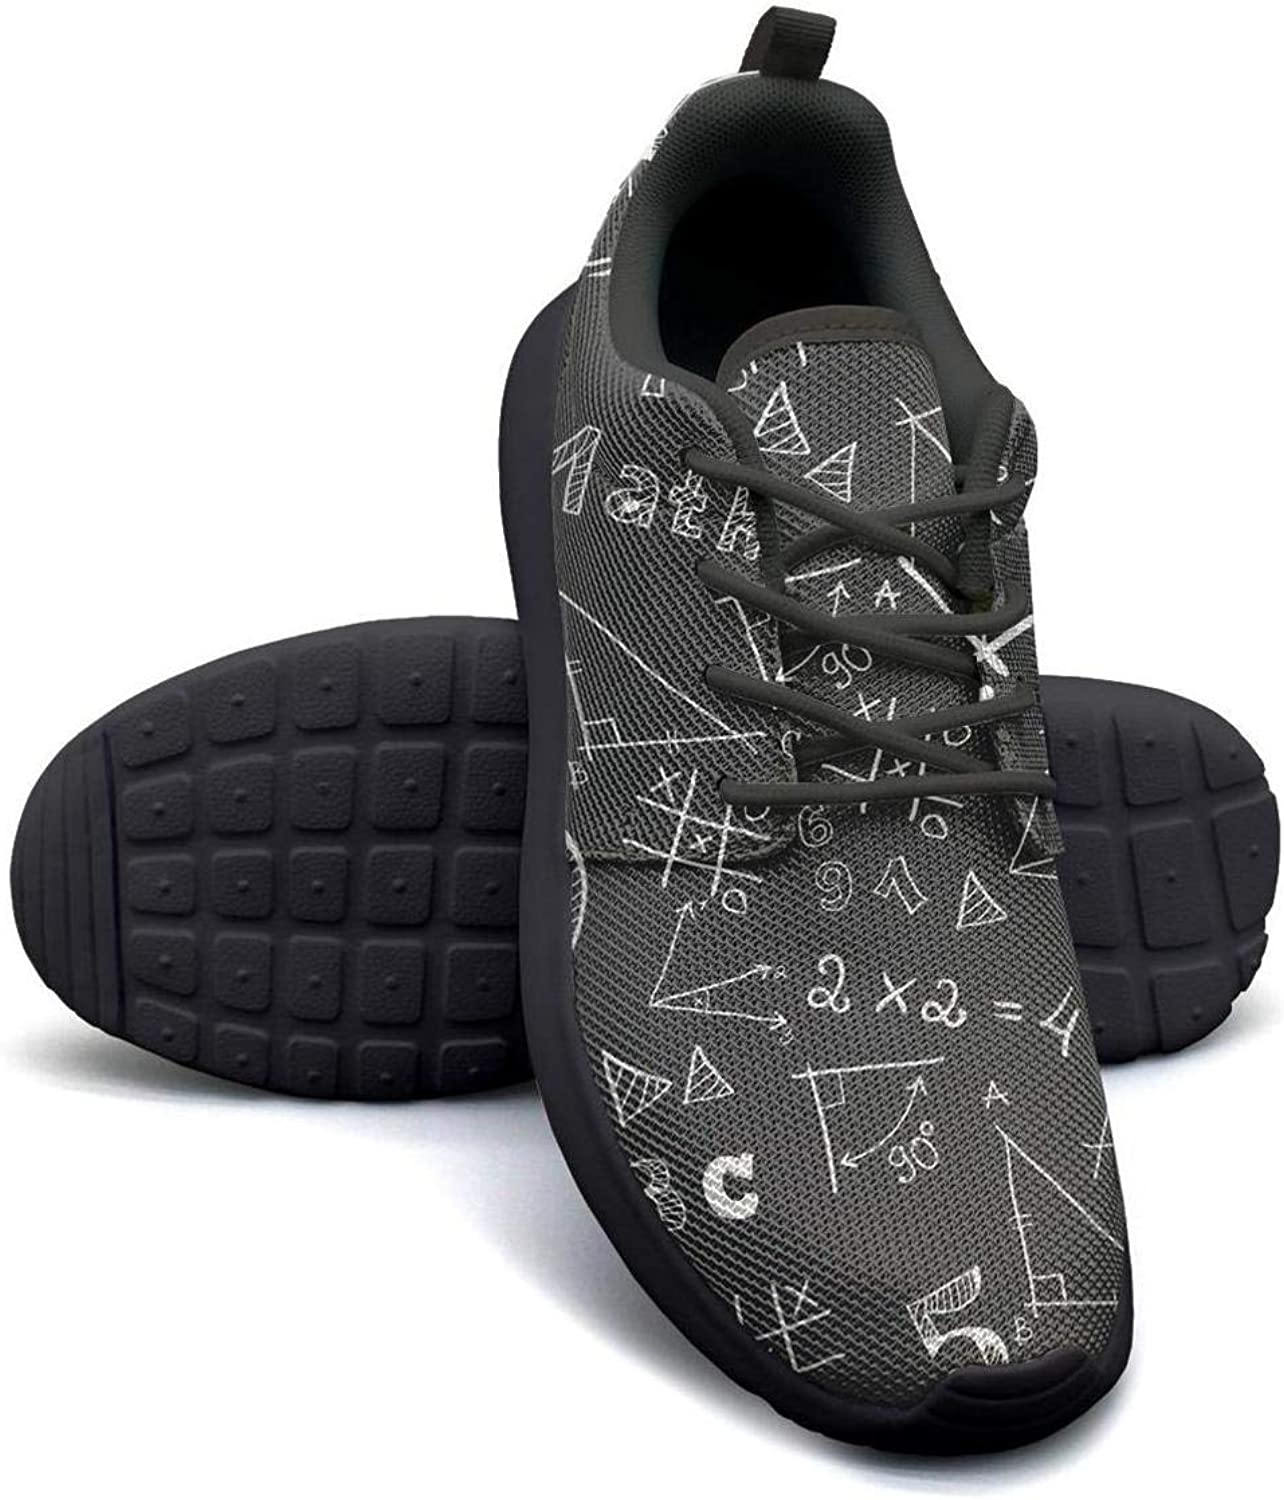 dhaskhdkl Black Math Calculus Equations Men Skateboard Casual Shoes Sneakers Cute Fitness Shoe